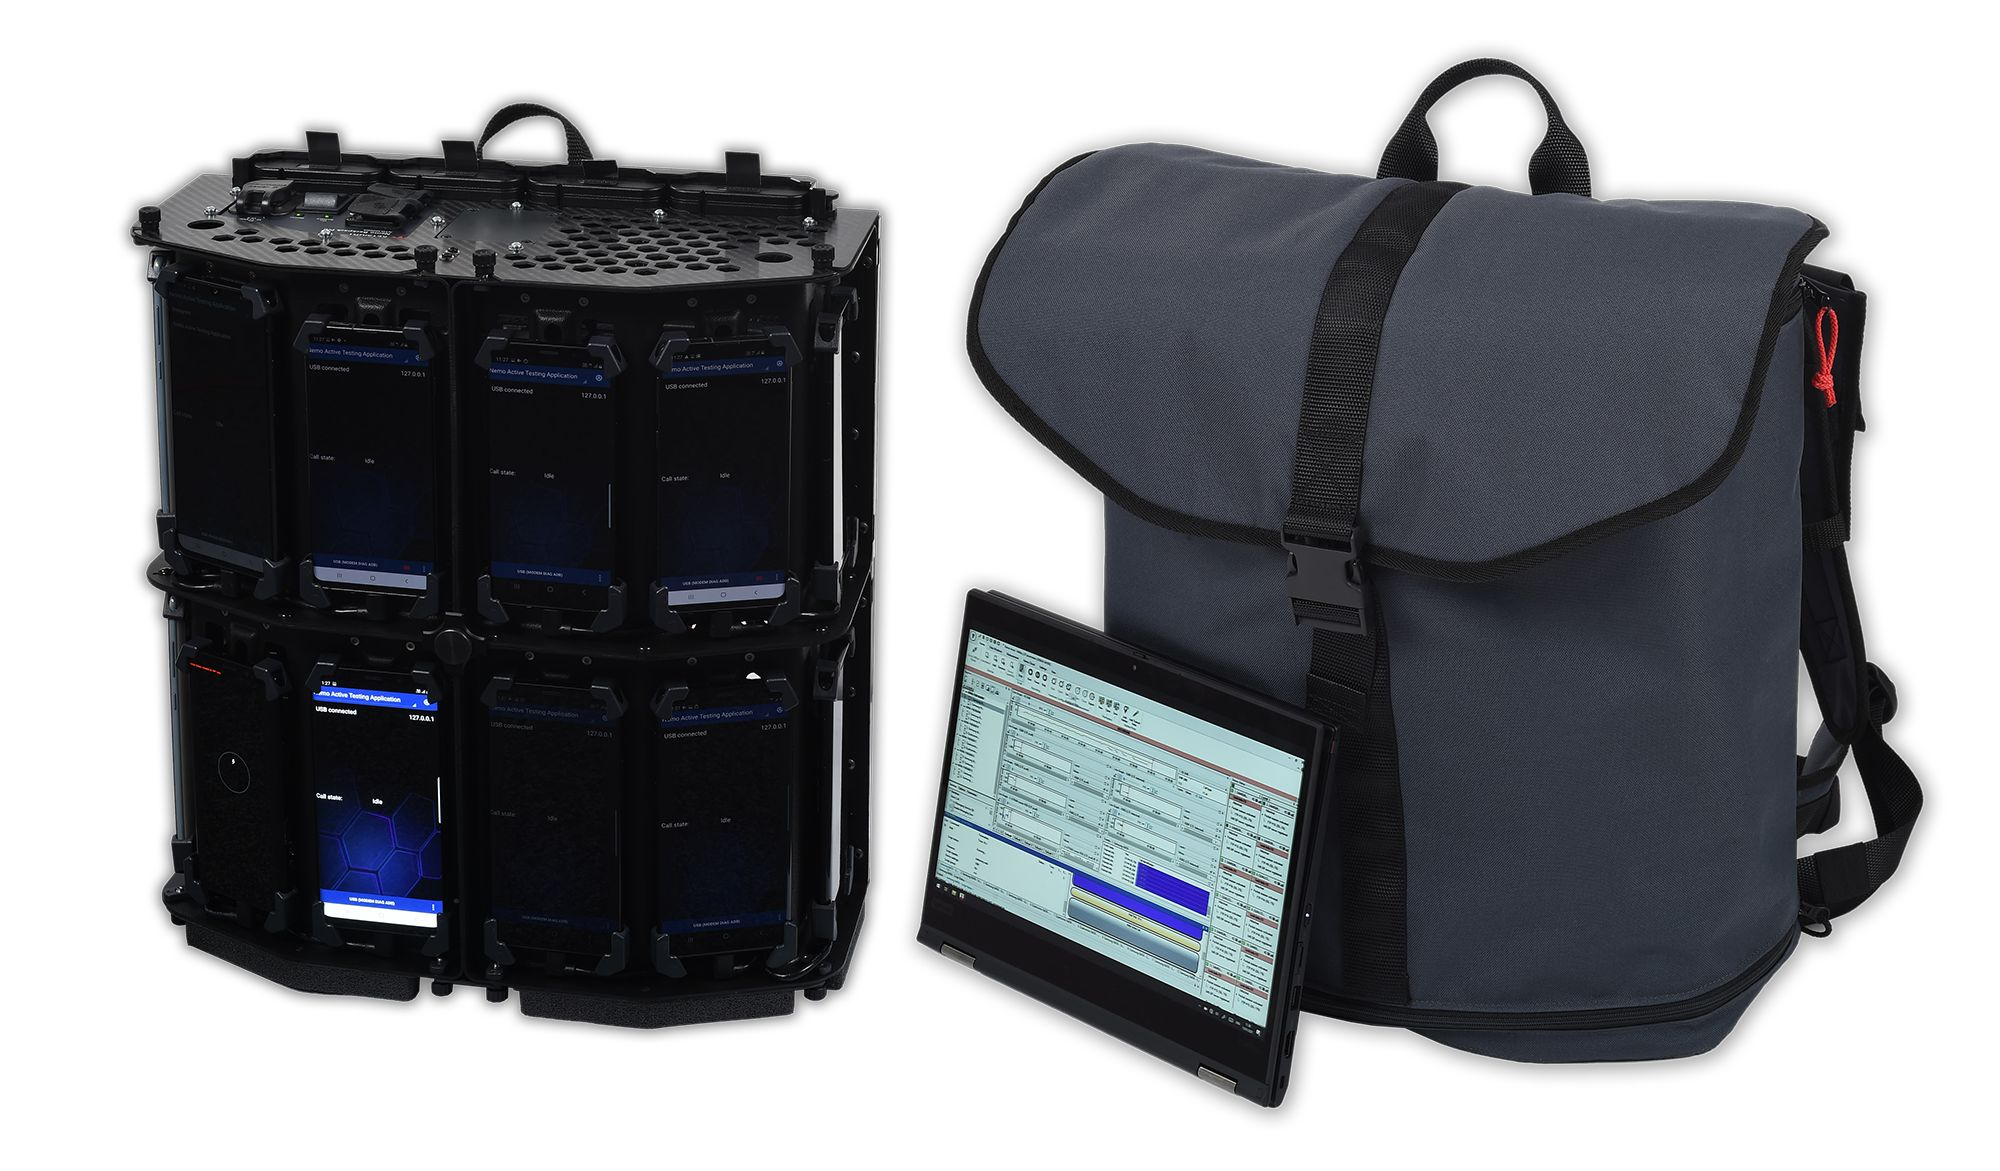 Nemo Backpack Pro 5G In-Building Benchmarking Solution